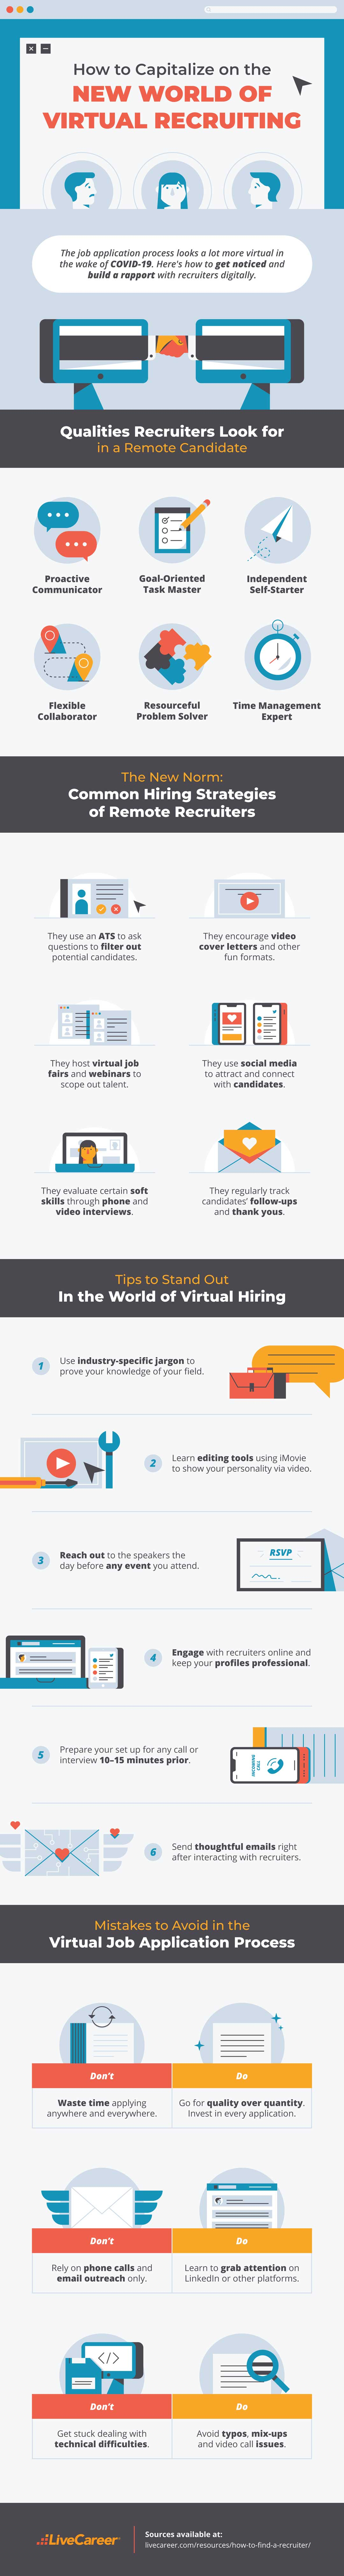 Infographic How to Land a Job by Working with a Recruiter Virtually